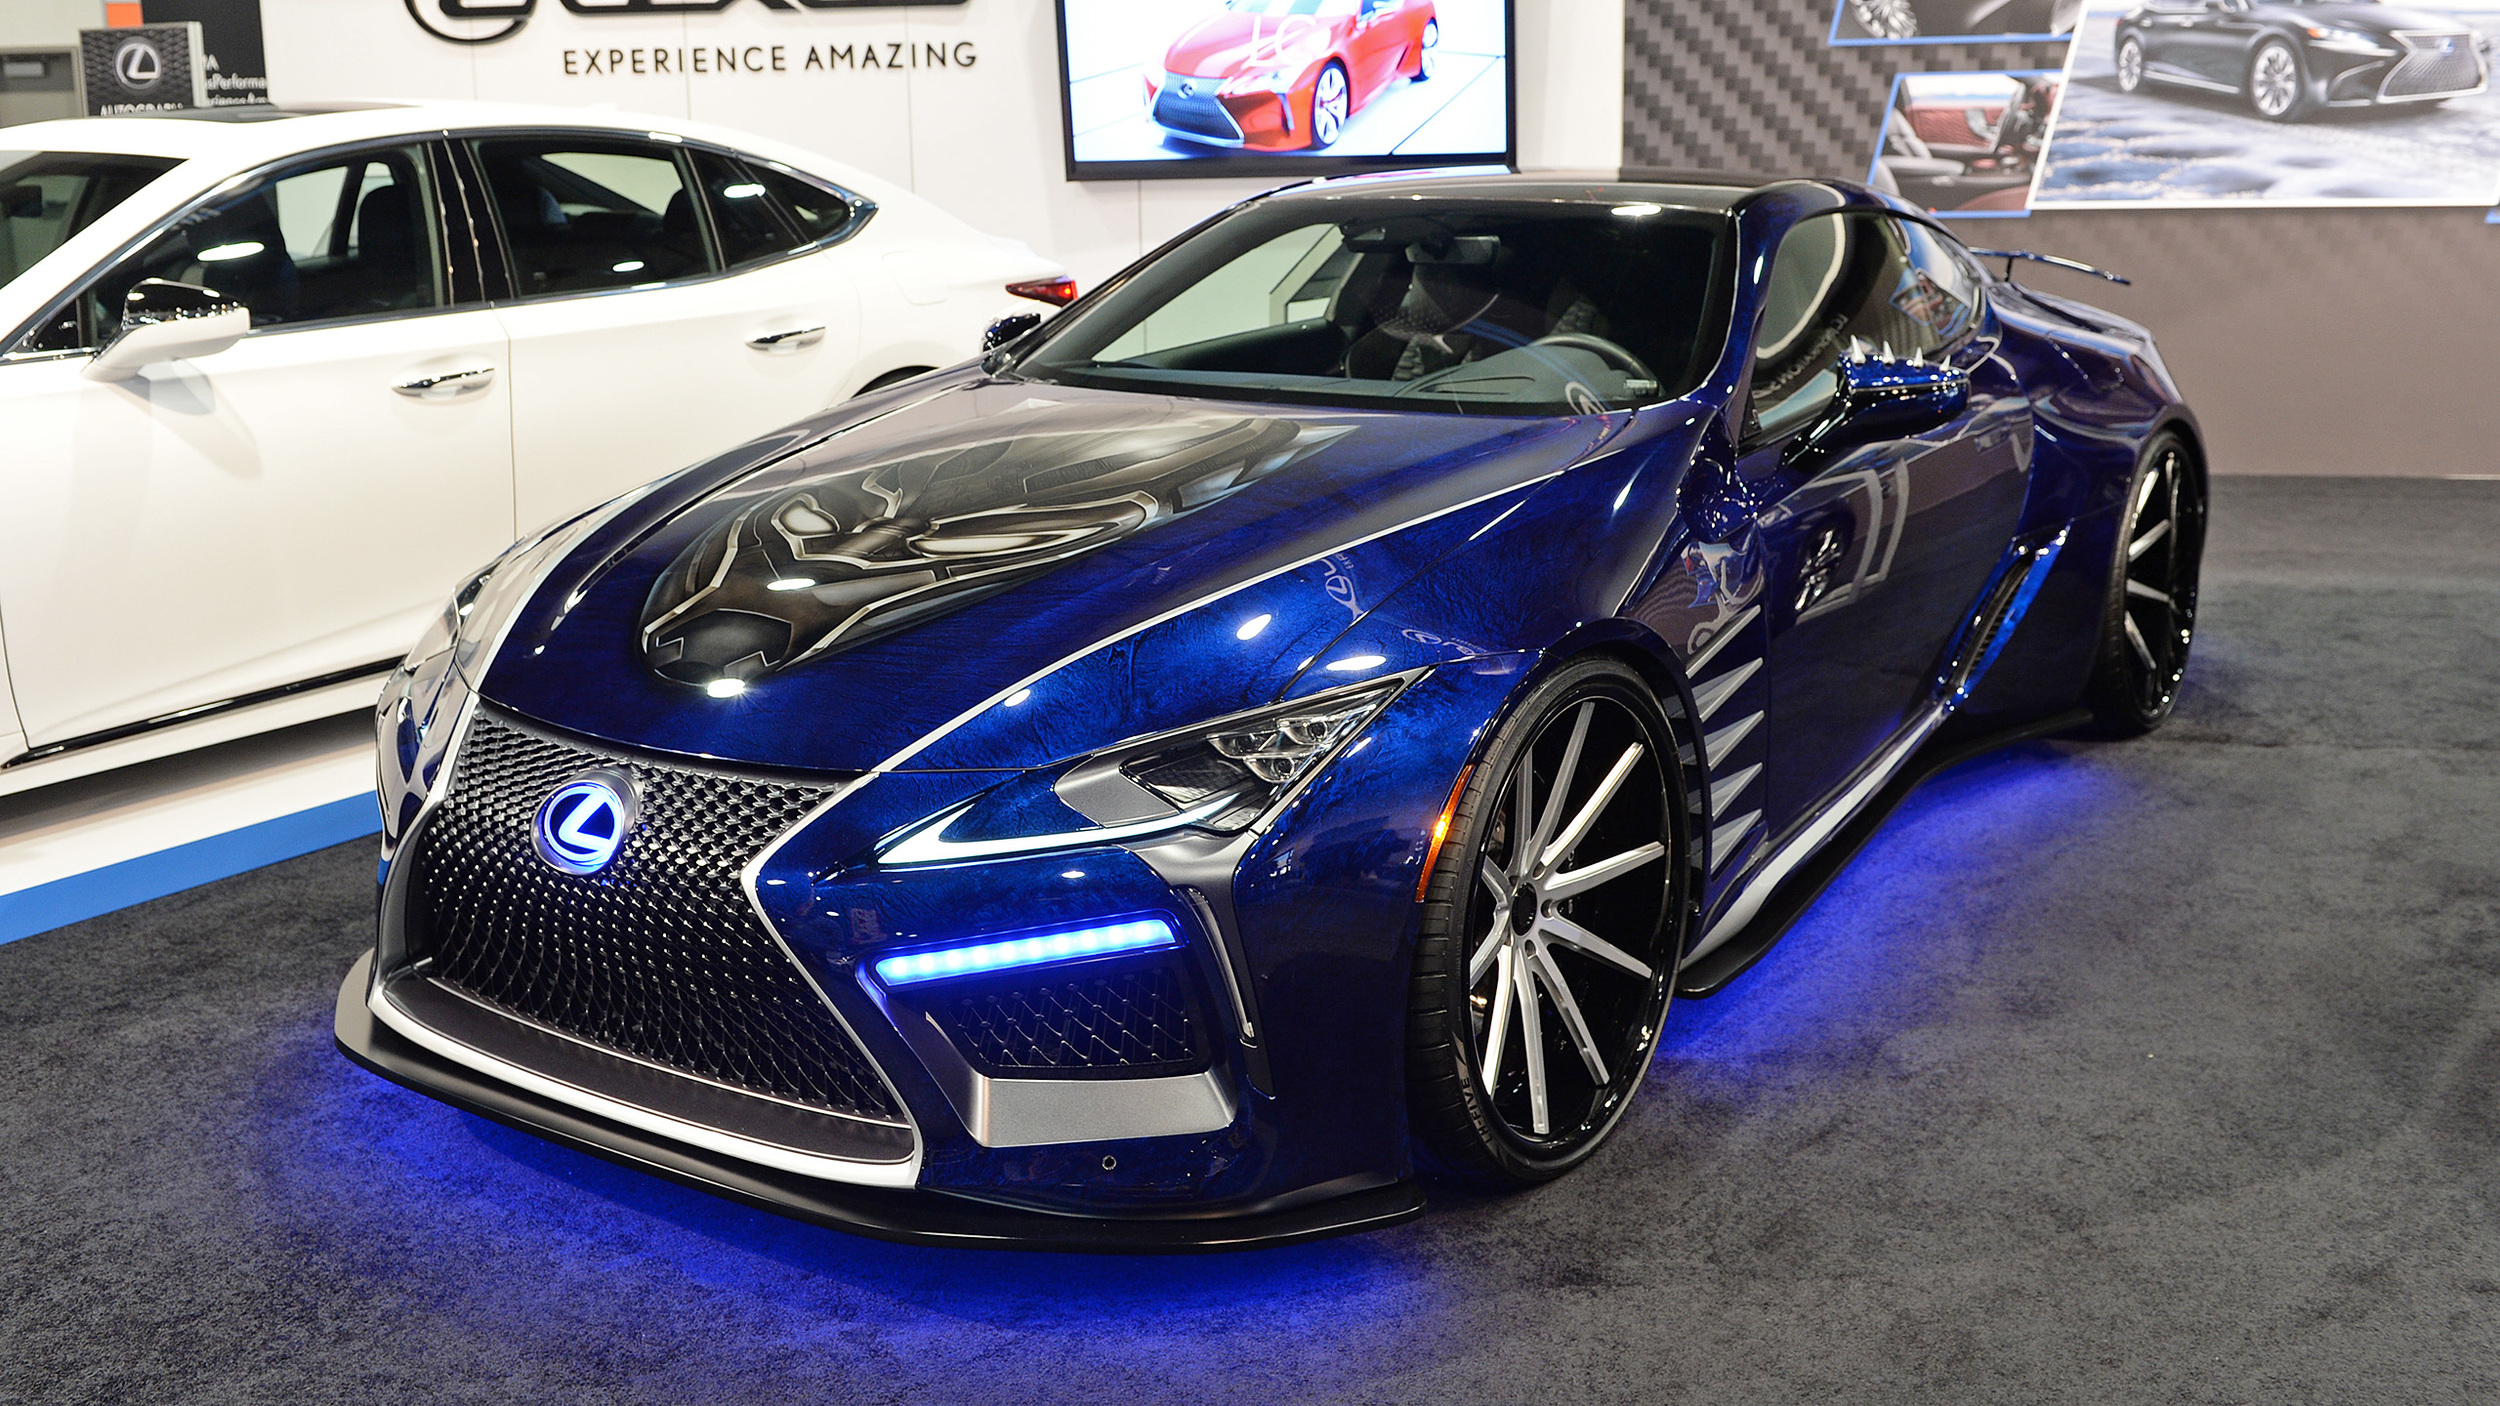 Lexus Black Panther Inspired LC Concept SEMA 2017 Gallery